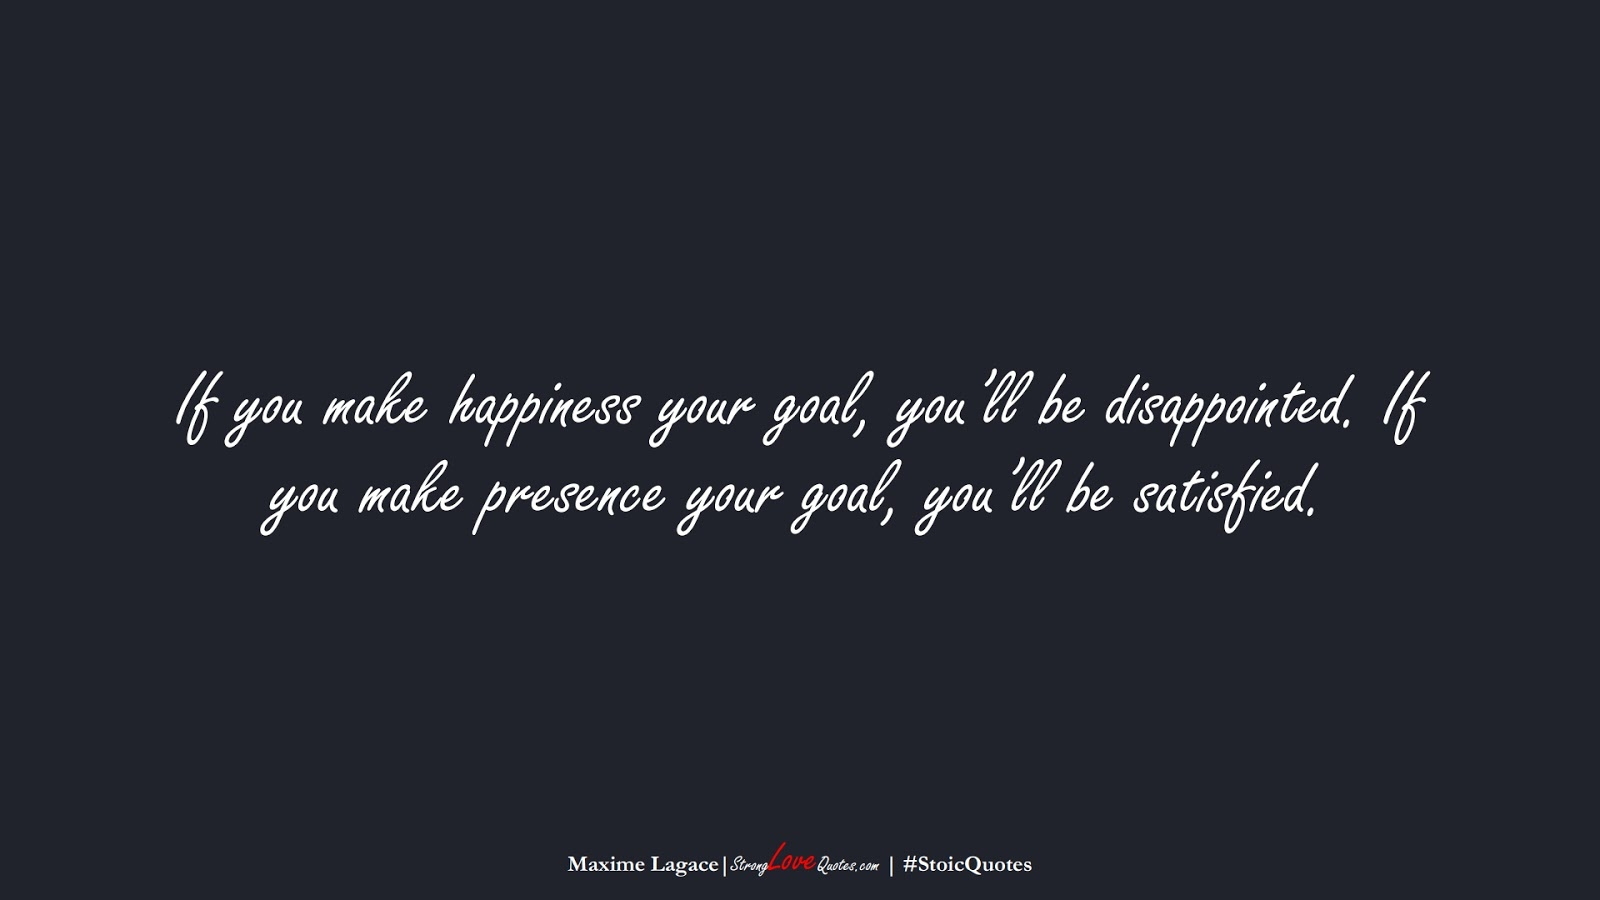 If you make happiness your goal, you'll be disappointed. If you make presence your goal, you'll be satisfied. (Maxime Lagace);  #StoicQuotes